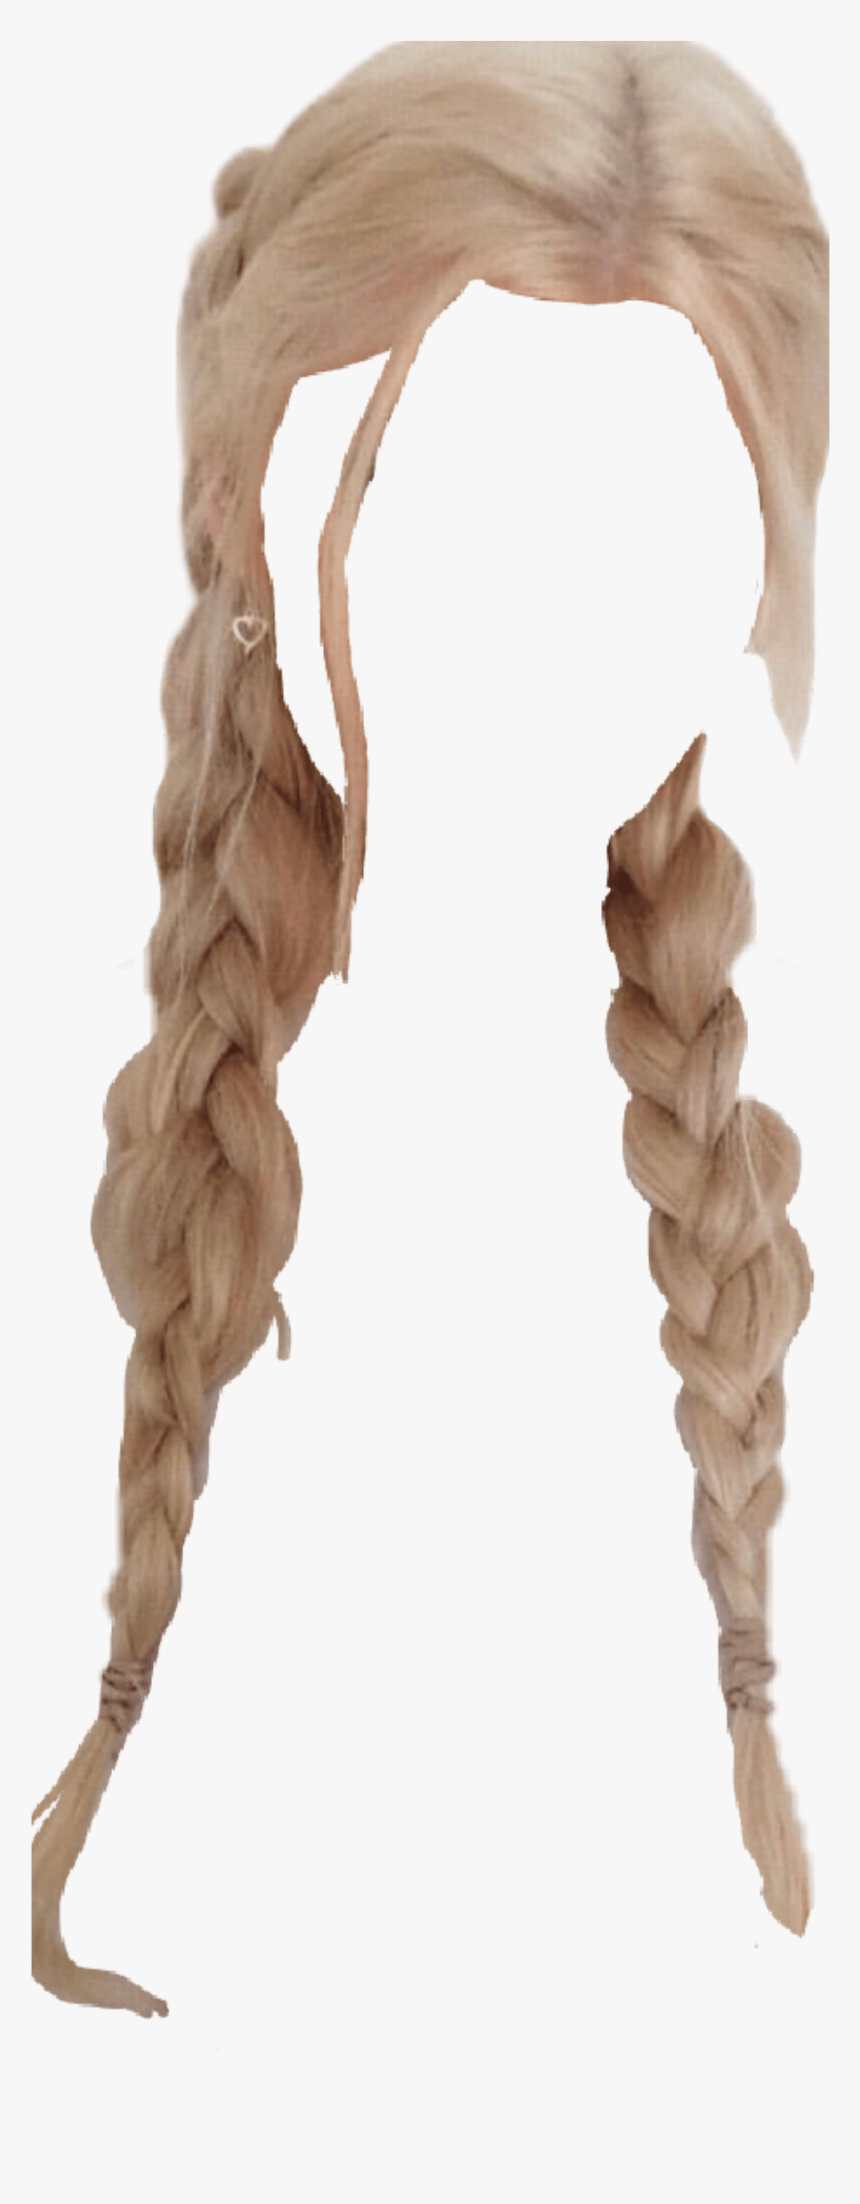 Blonde Hair Af Blonde Hair Braids Png Transparent Png Kindpng